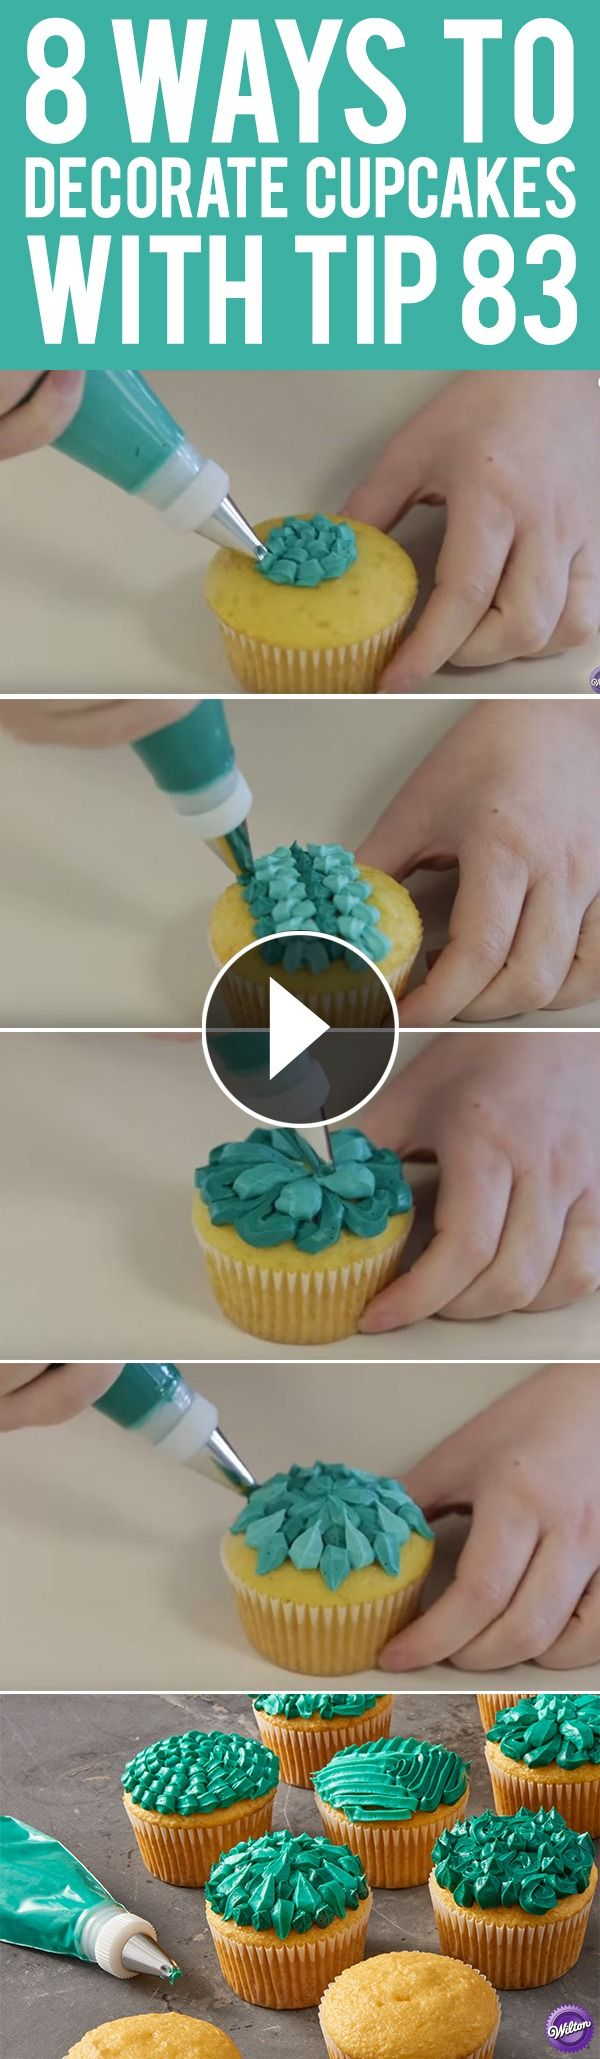 """Learn how to decorate cupcakes using the Wilton specialty piping tip 83. Commonly used to pipe little """"X"""" shapes, this decorating tip can also be used to pipe everything from shells to zig-zags. Up your cupcake decorating game with these eight fun and clever ways to use decorating tip 83!"""